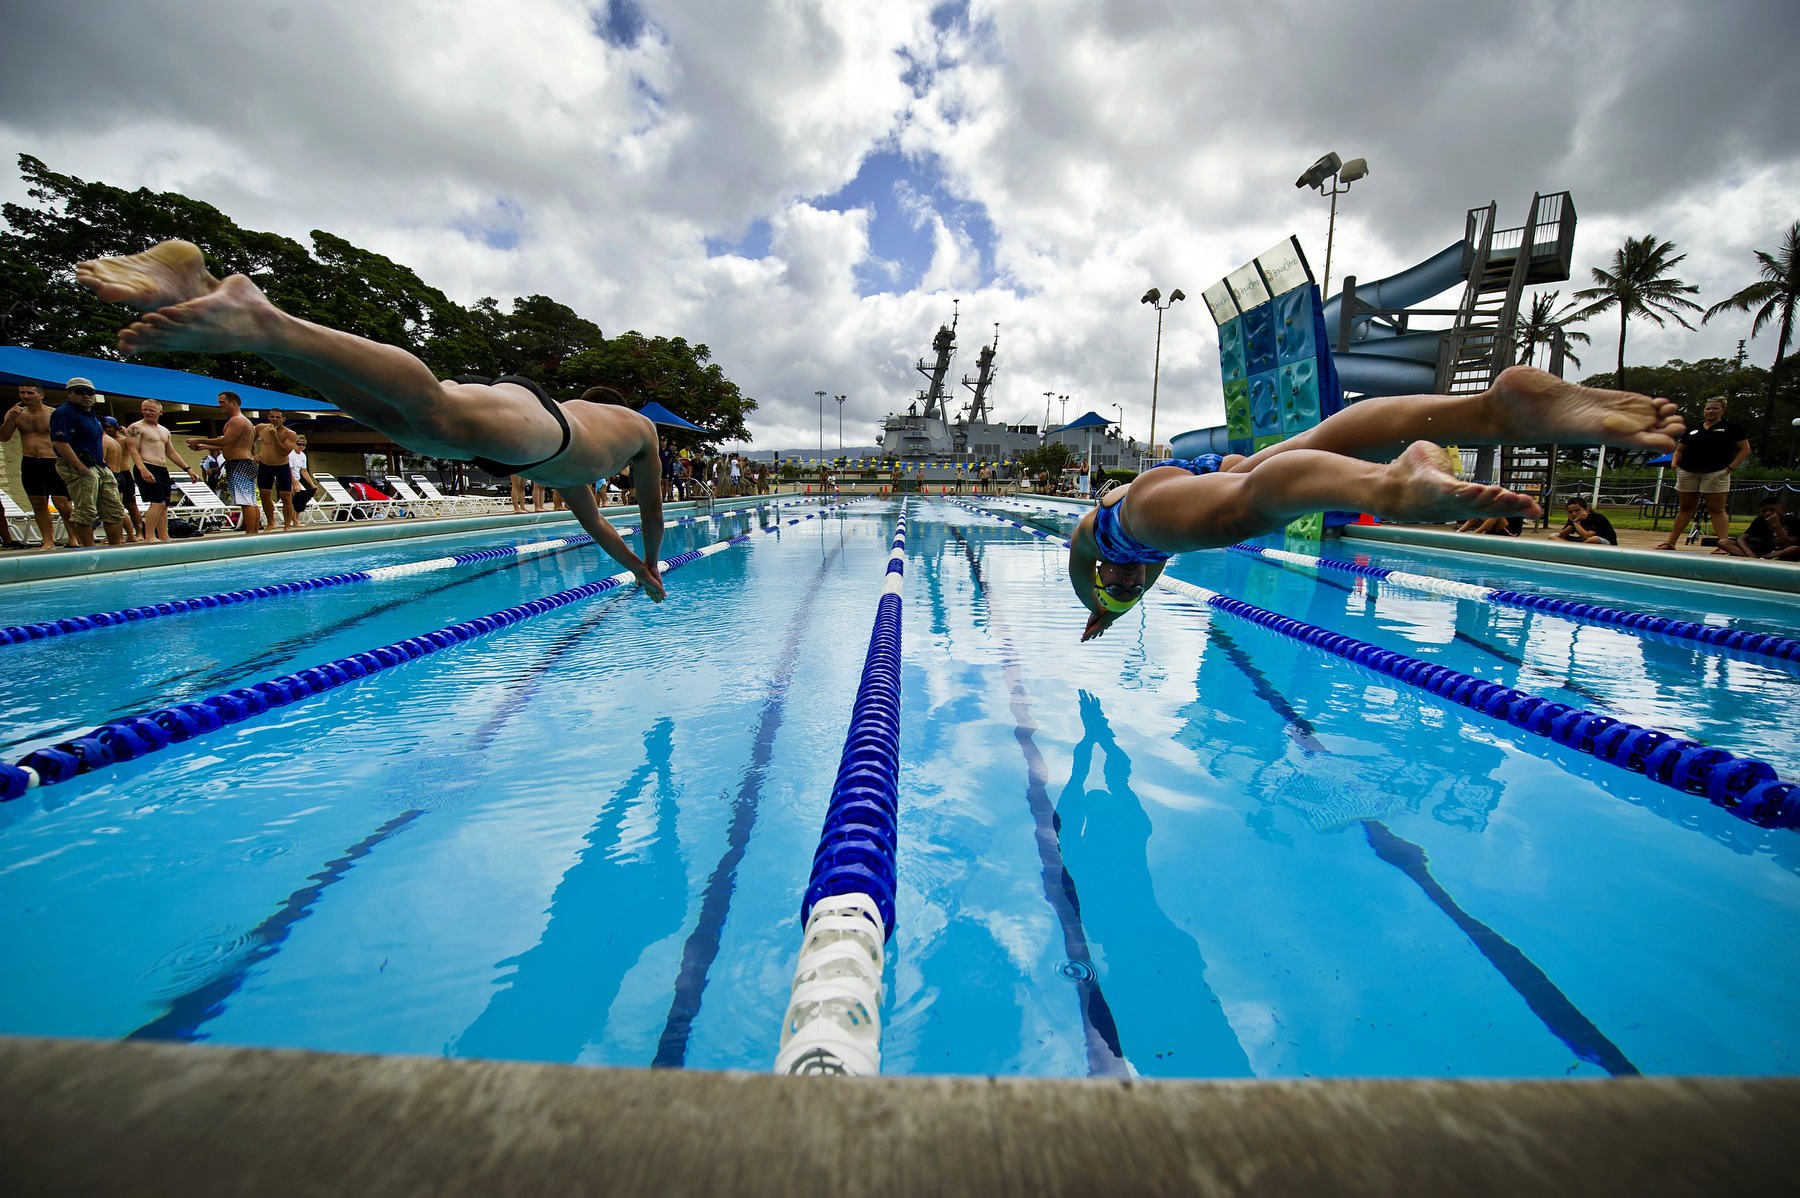 RIMPAC international swim meet